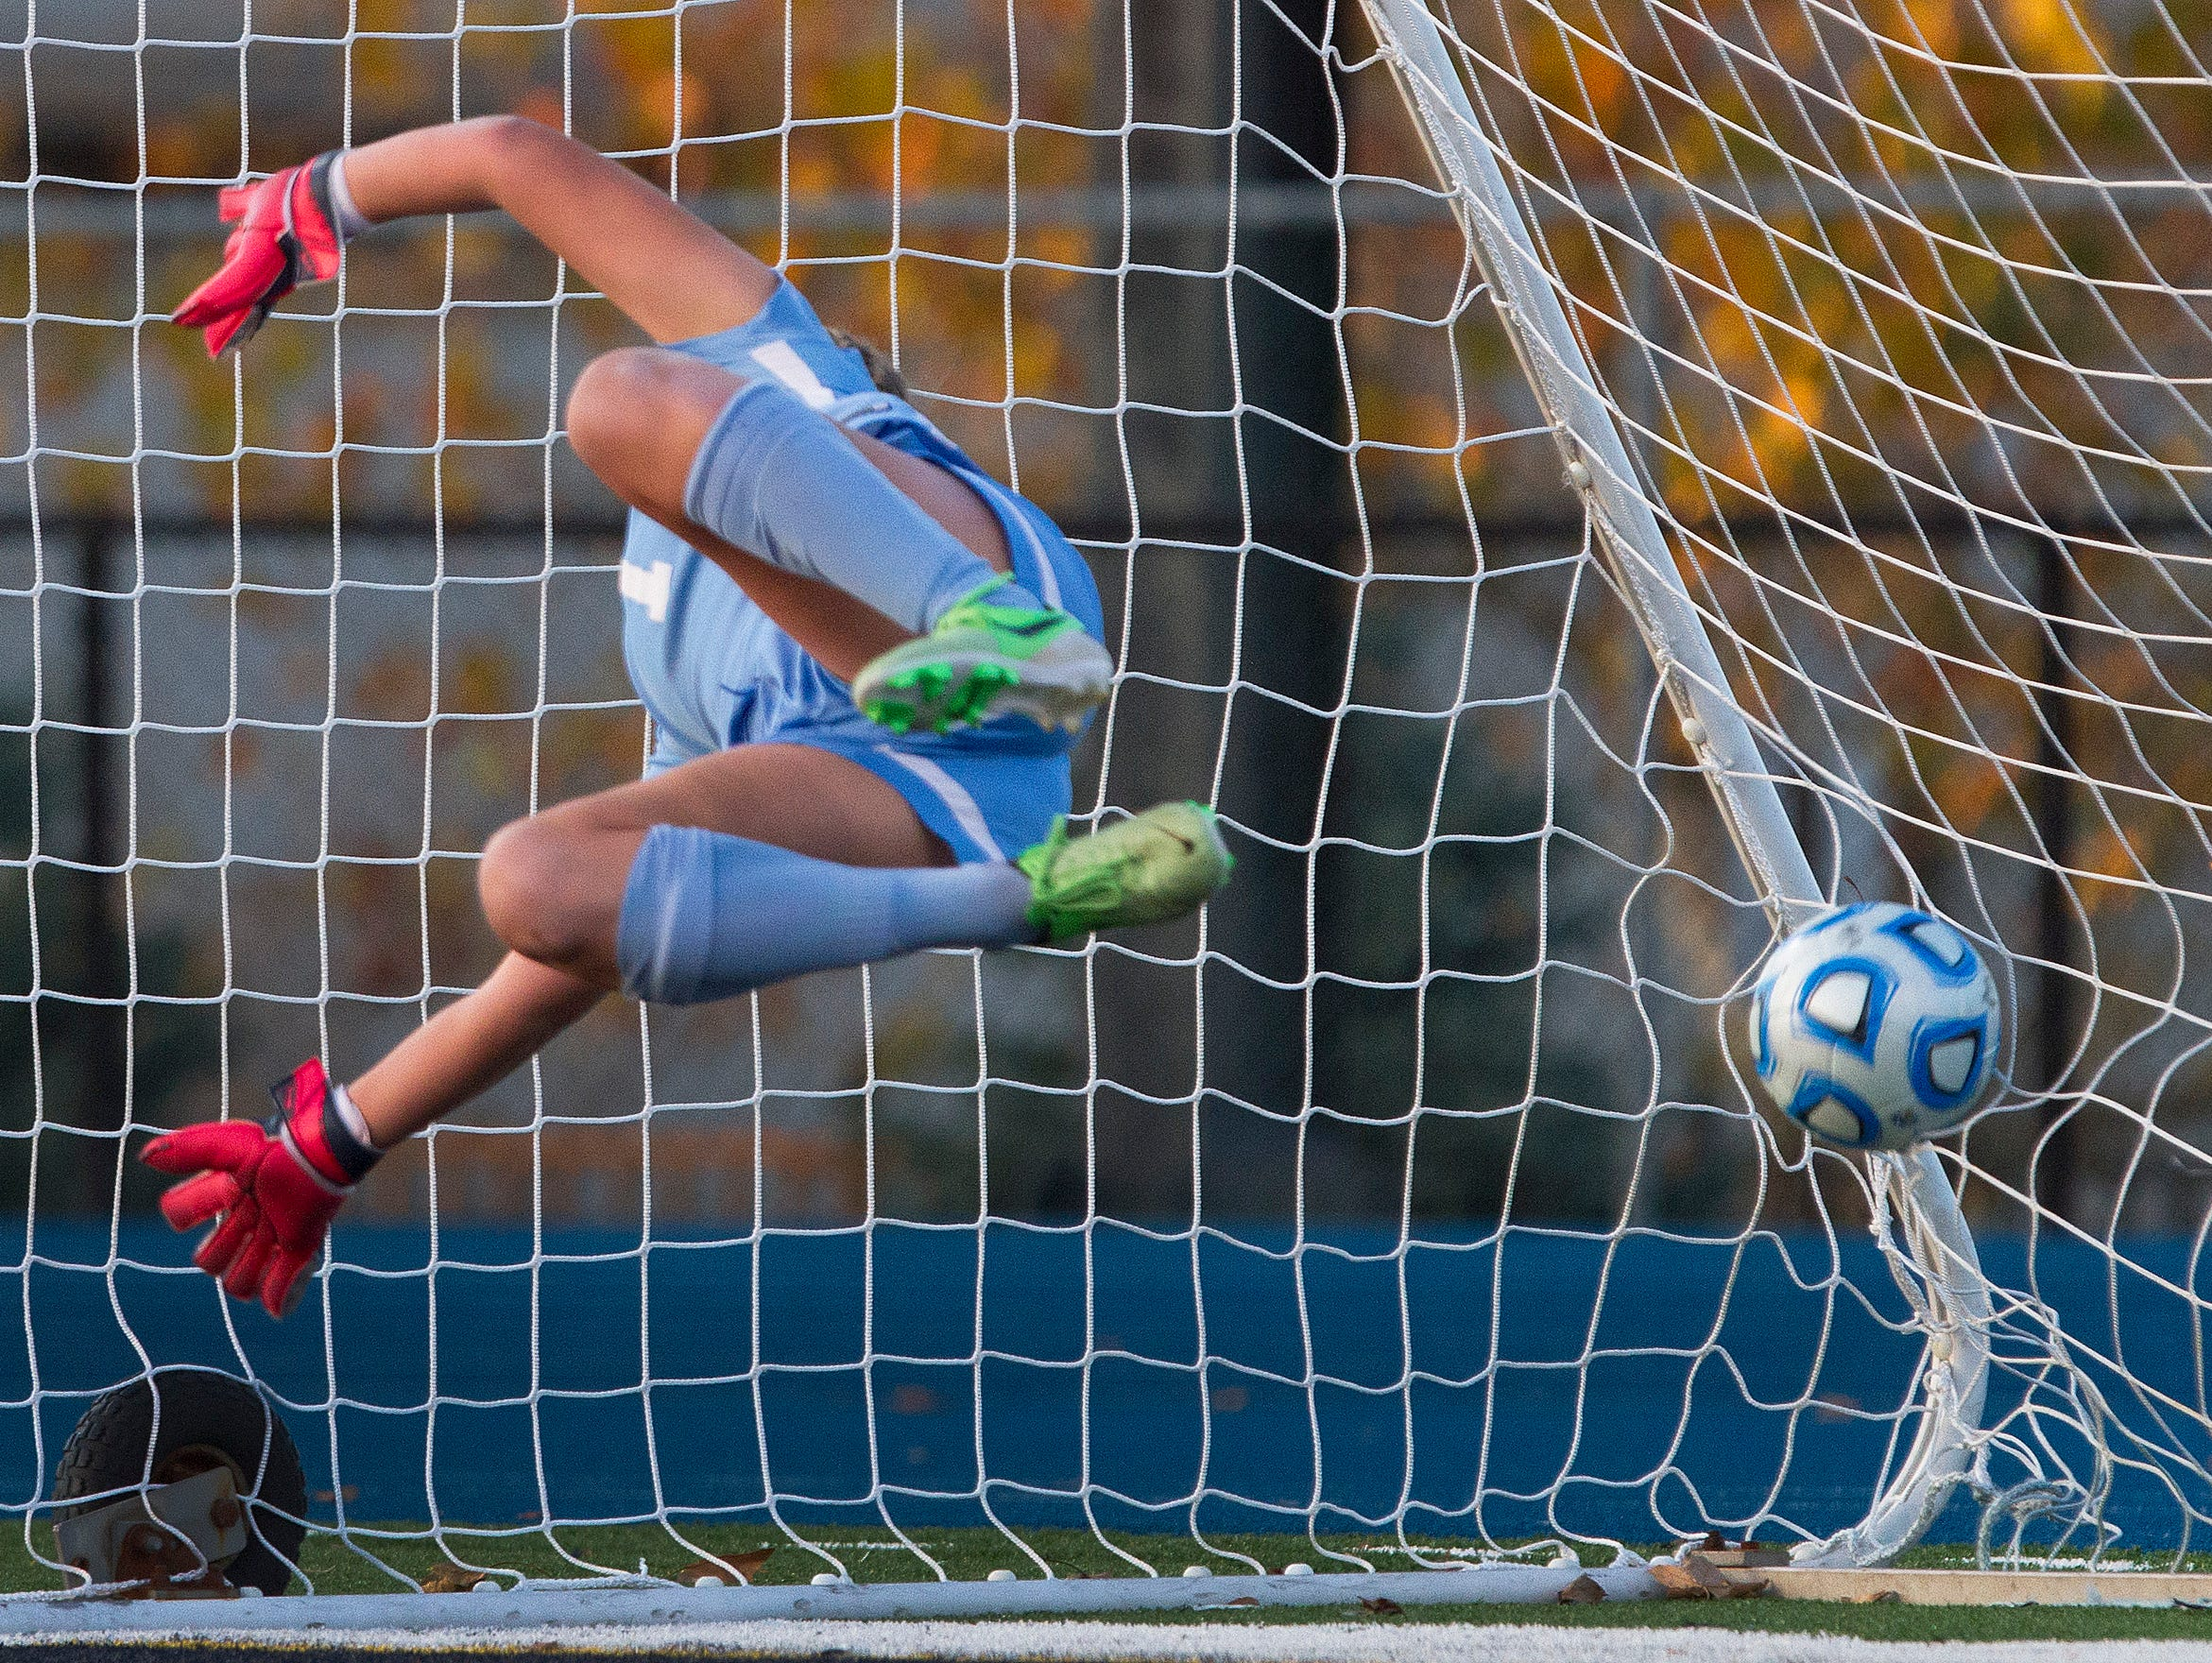 Northern Highlands goalie Kayla Klatt dives for but can't get to penalty shot by Colts Neck's Frankie Tagliaferri that put Colta Neck ahead 1-0. Colt Necks Girls Soccer vs Northern Highlands in NJSIAA State Group III Championship at Kean University on November 21, 2015 in Union, NJ.